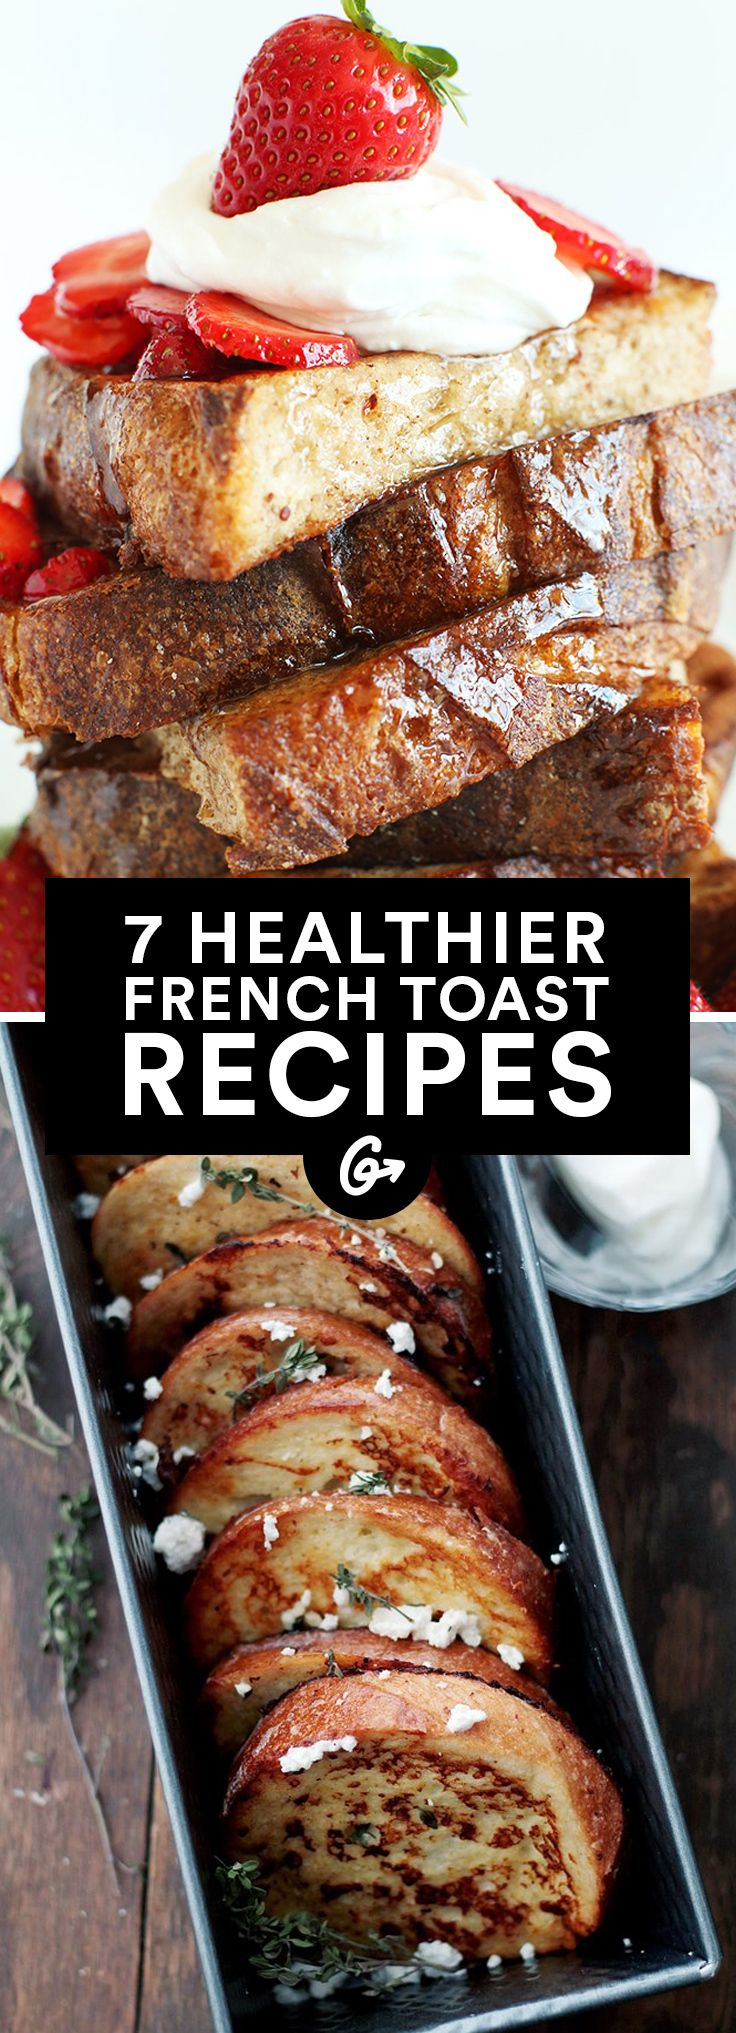 7 Healthier French Toast Recipes #french #toast #healthy http://greatist.com/eat/healthier-french-toast